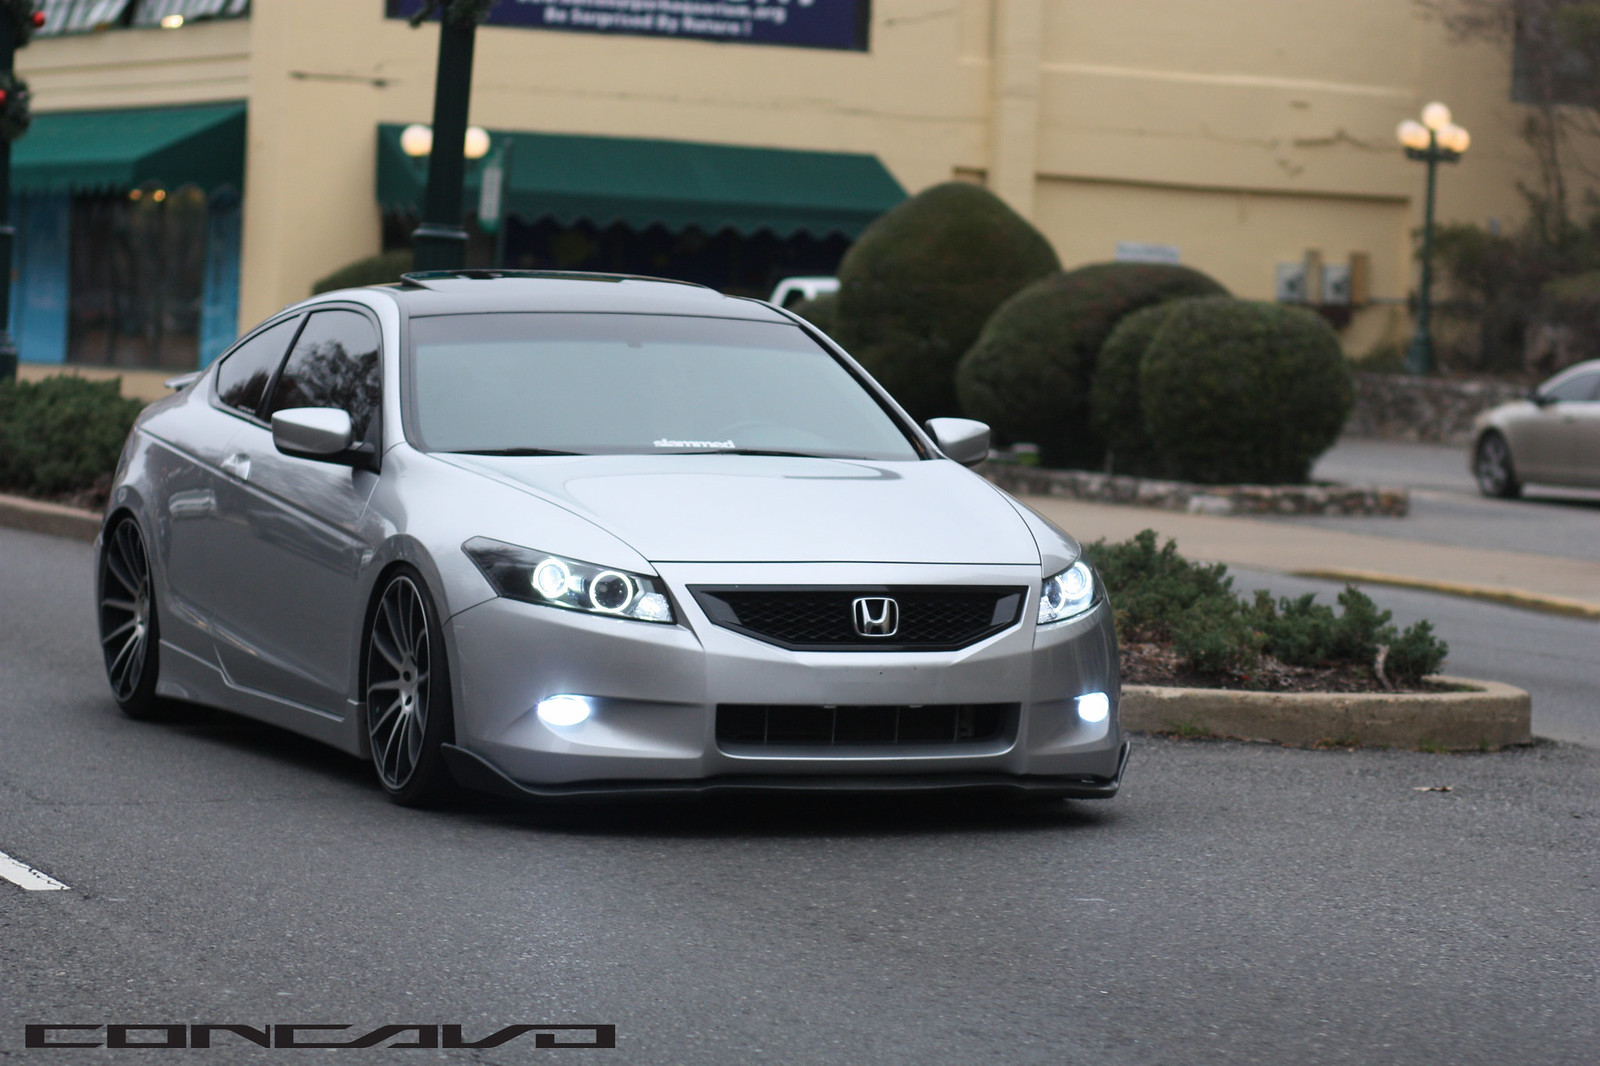 Honda Accord Coupe Concavo Cw 12 Arkansas